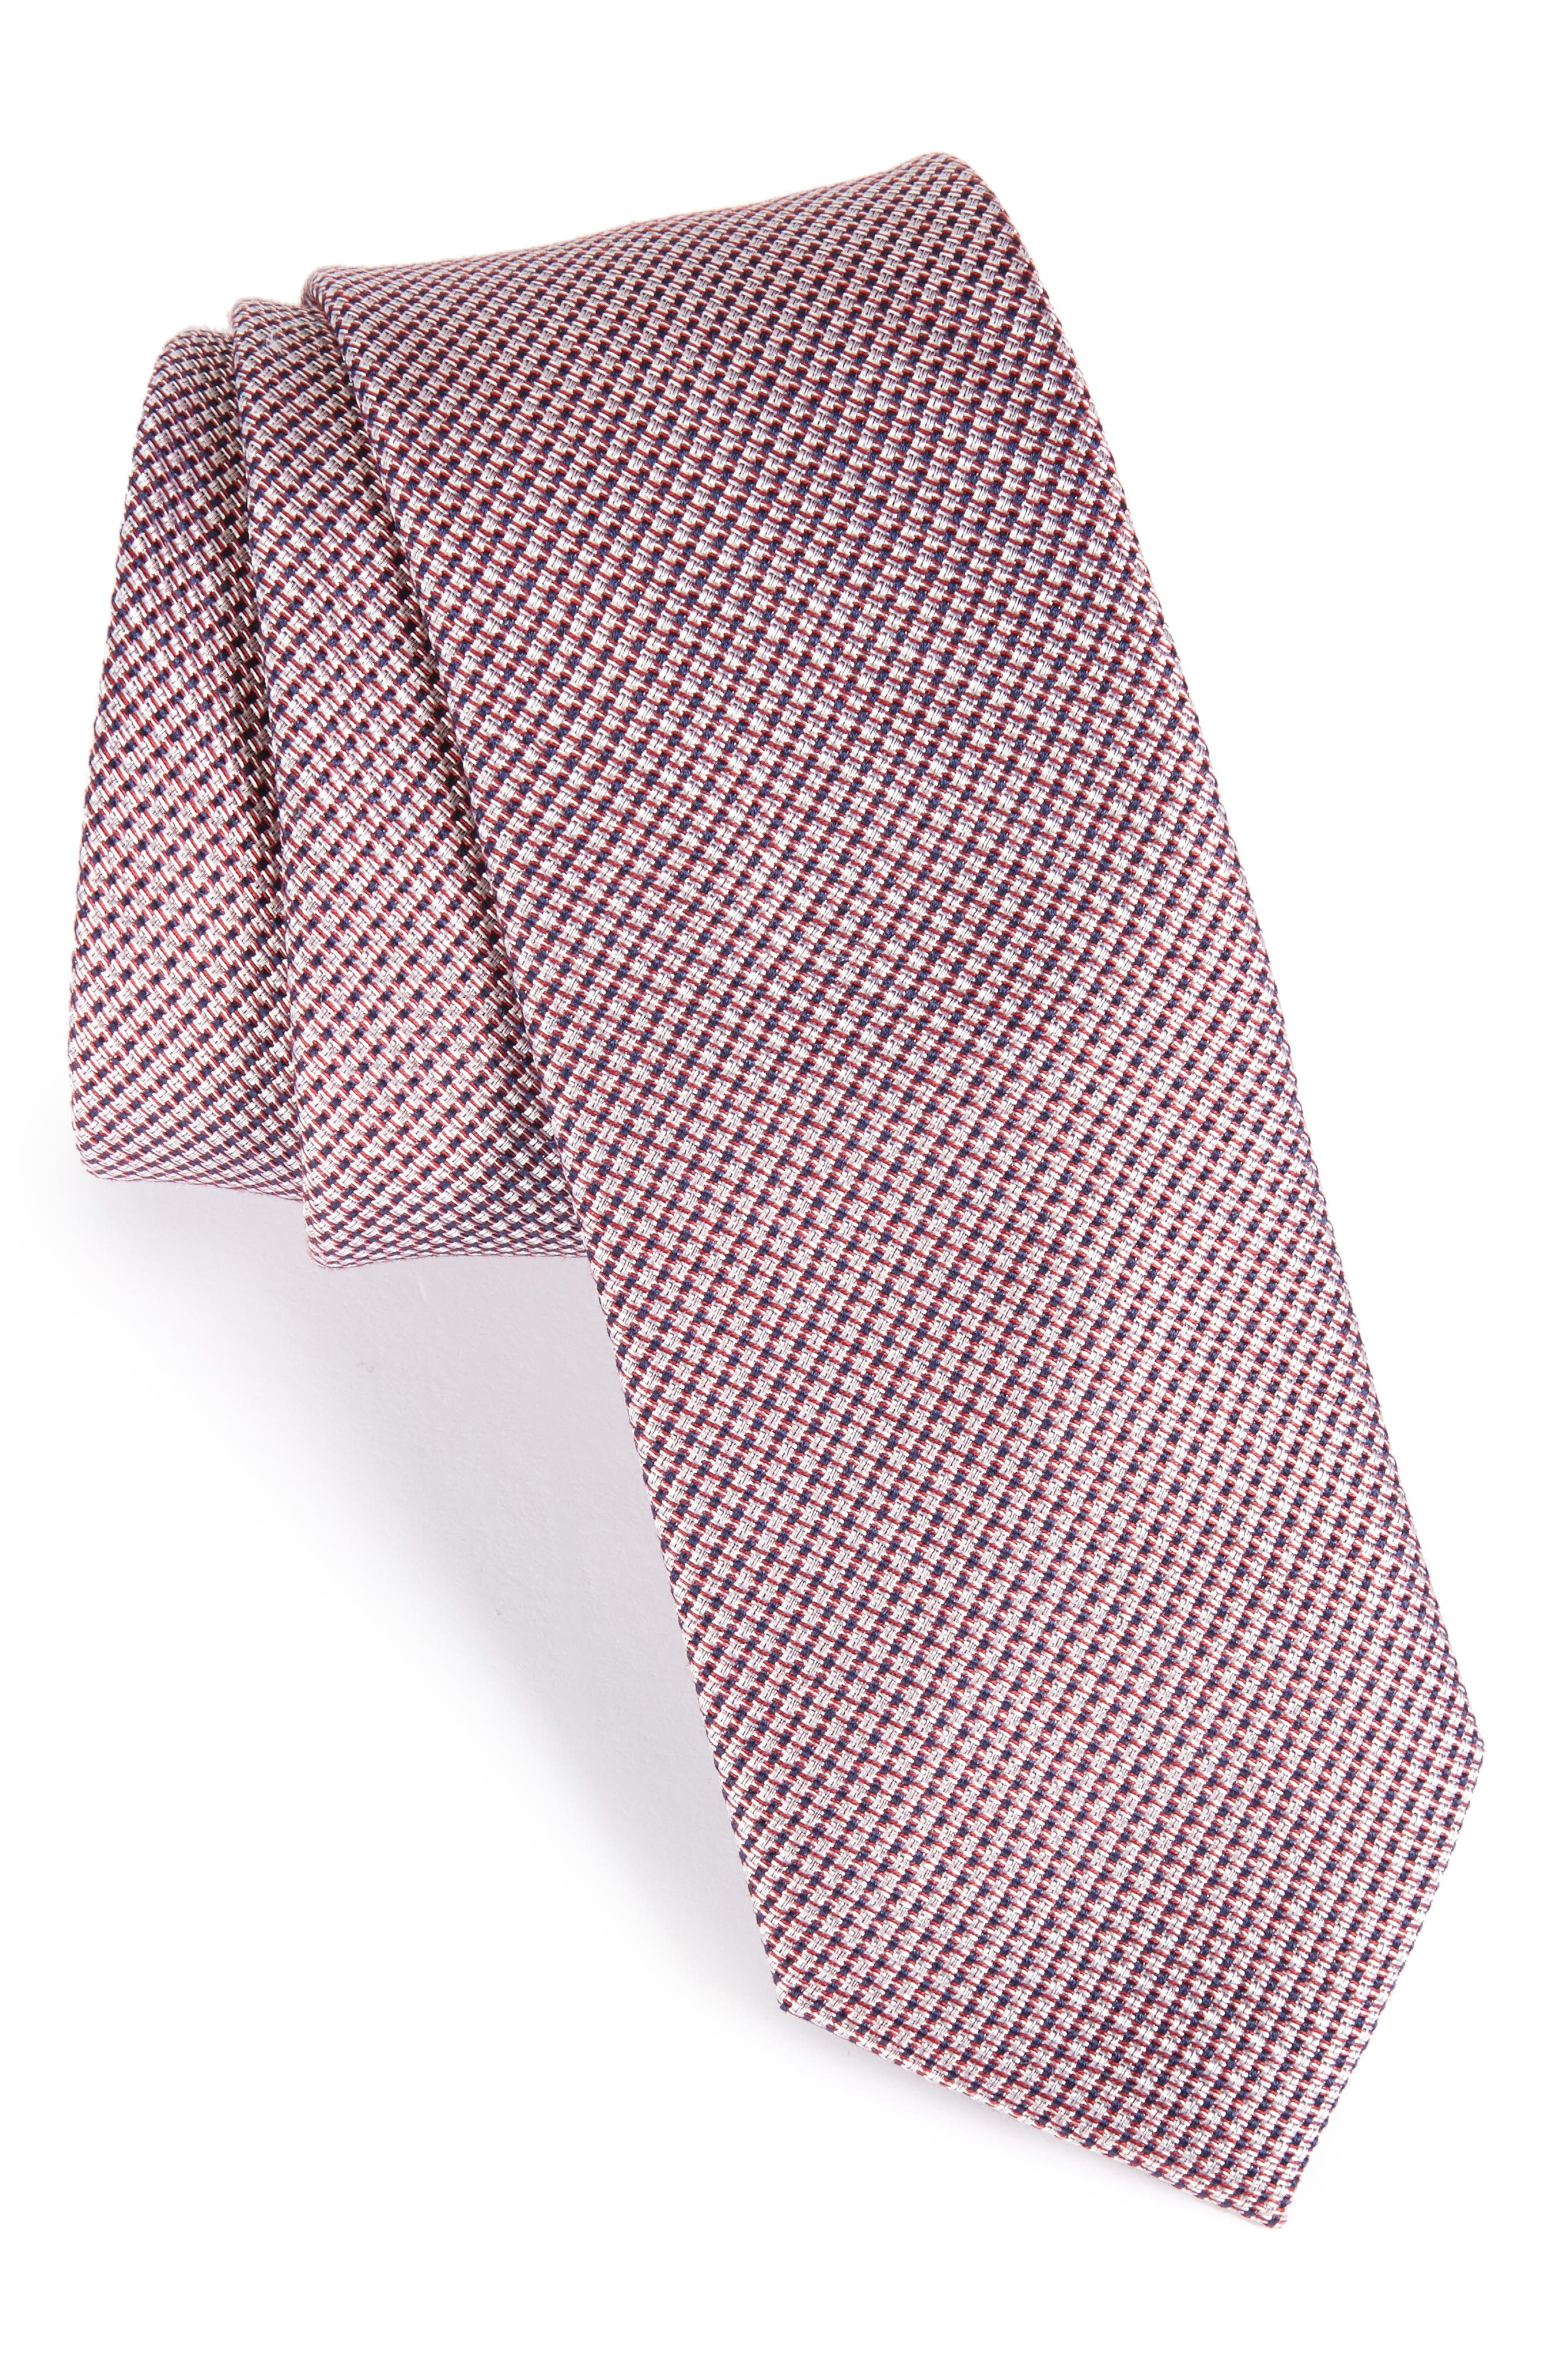 Main Image - Nordstrom Men's Shop Solid Silk & Cotton Skinny Tie